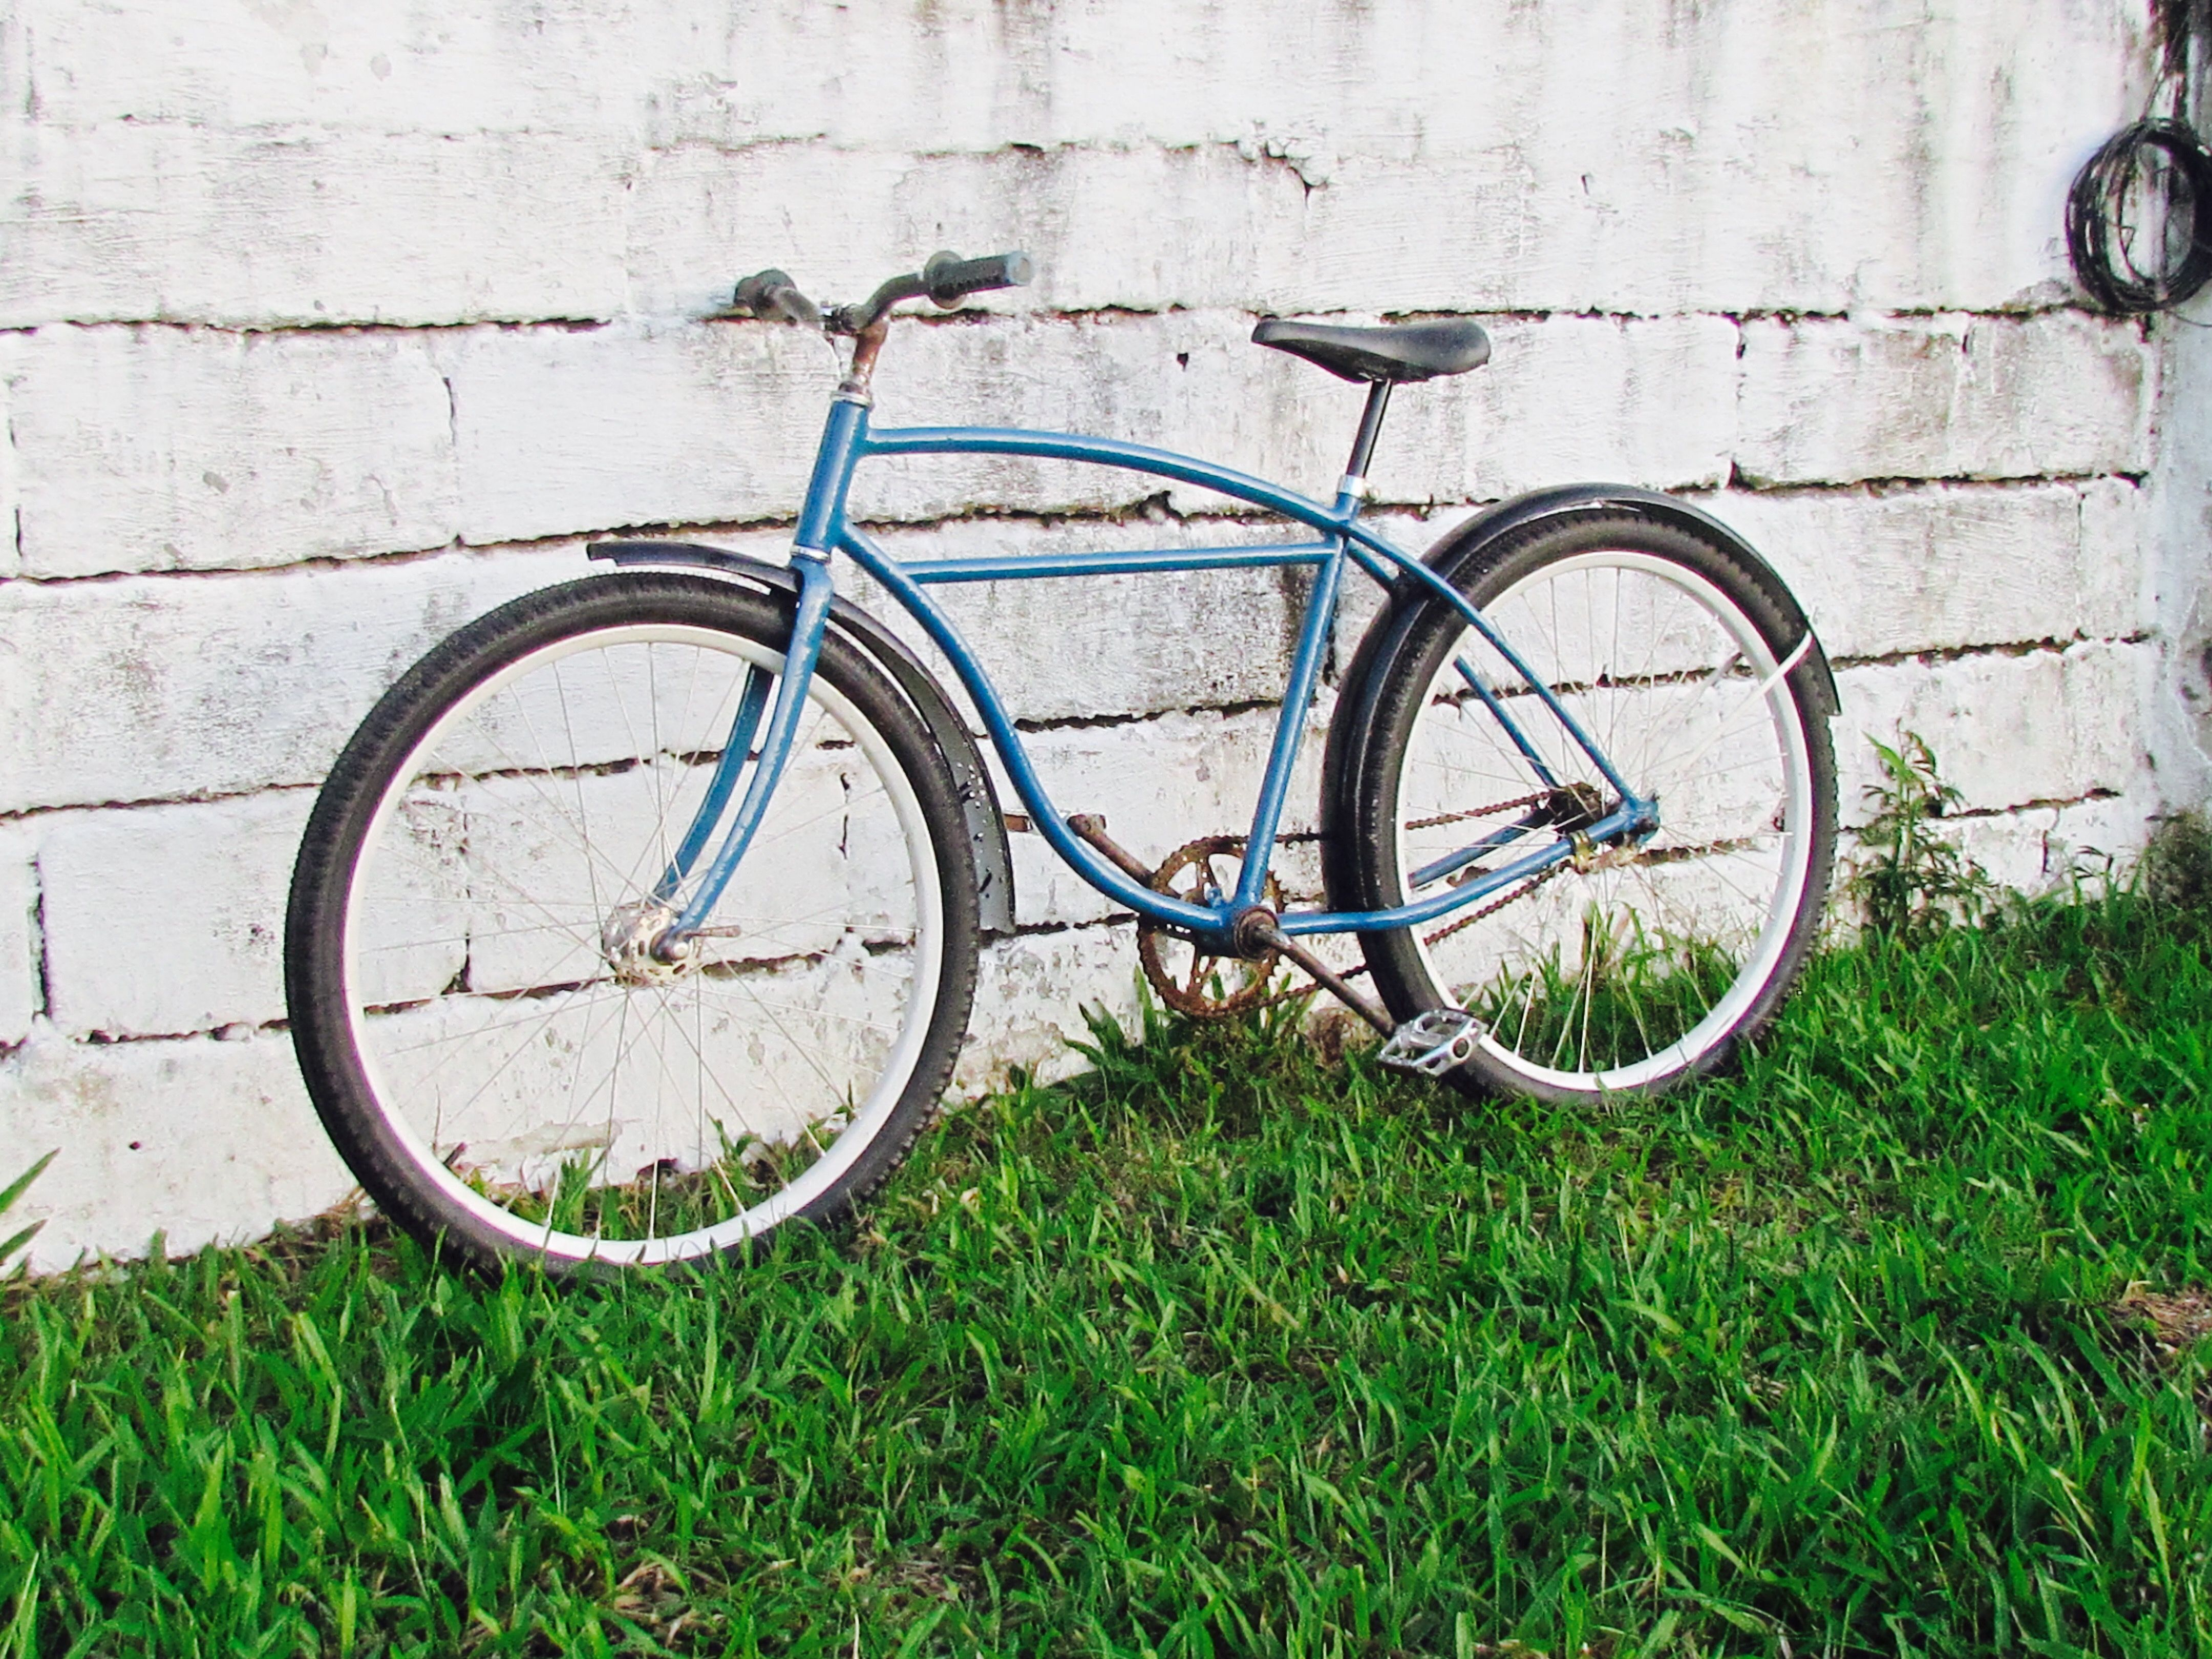 Pin By Richard Swaffield On Chosen Only Bikes Bicycle Bike